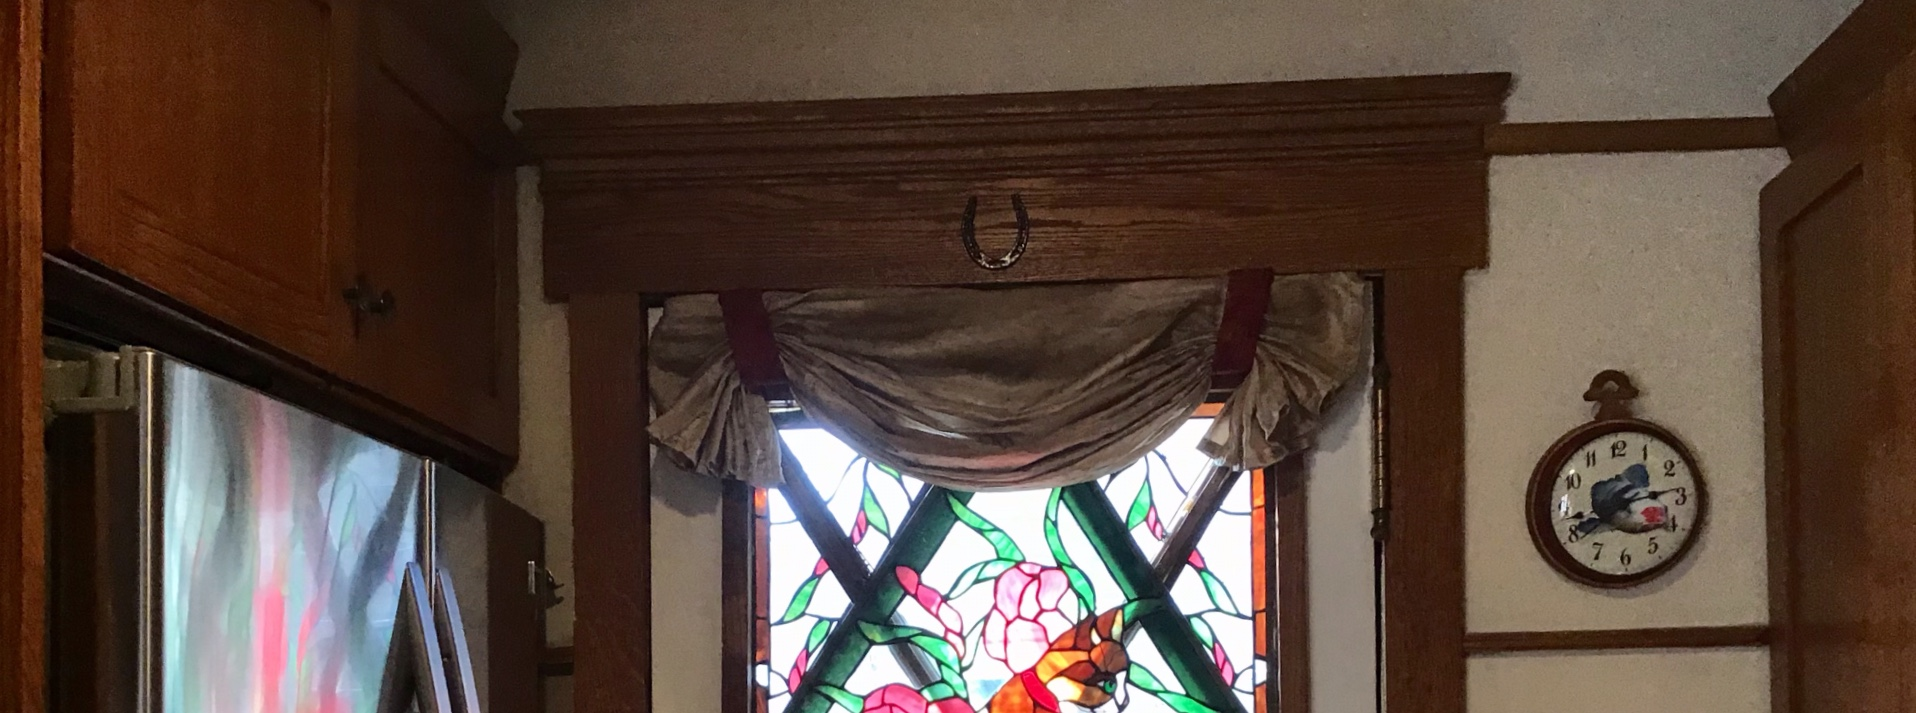 How to install a valance in a bay window.-eb9e7cc5-43bc-421c-b8df-9afad0f6167d.jpeg